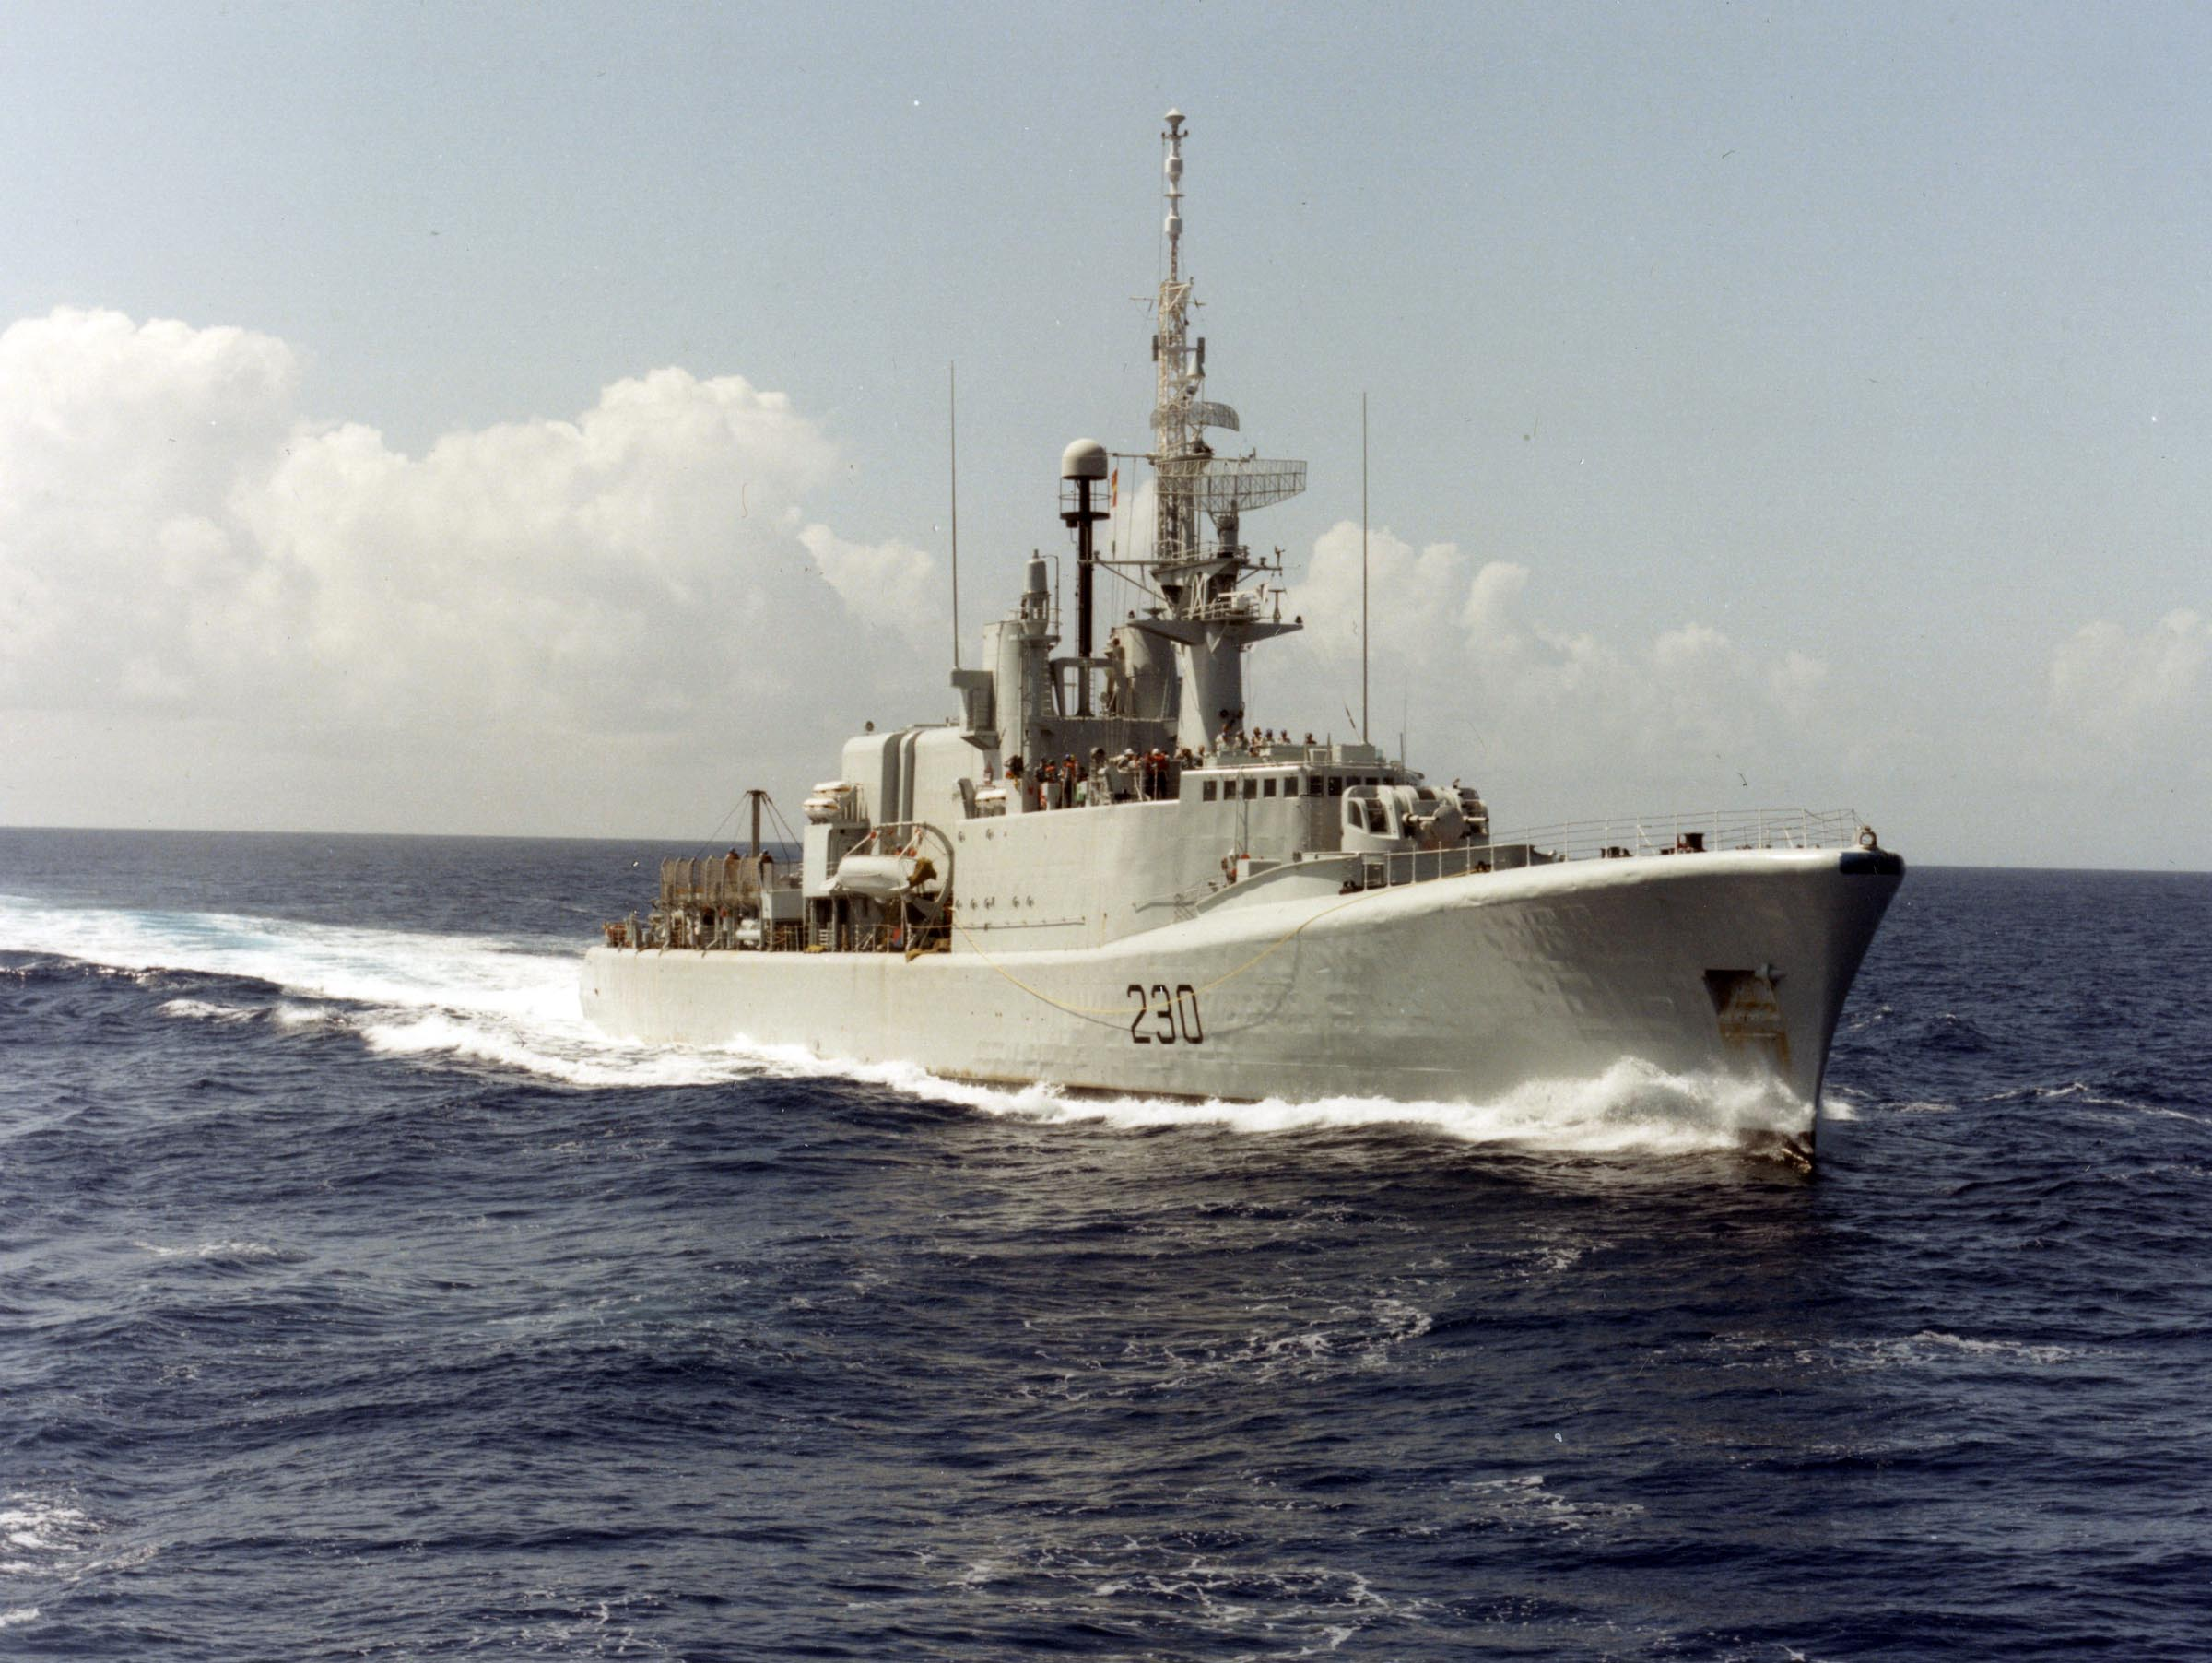 HMCS MARGAREE (2nd)